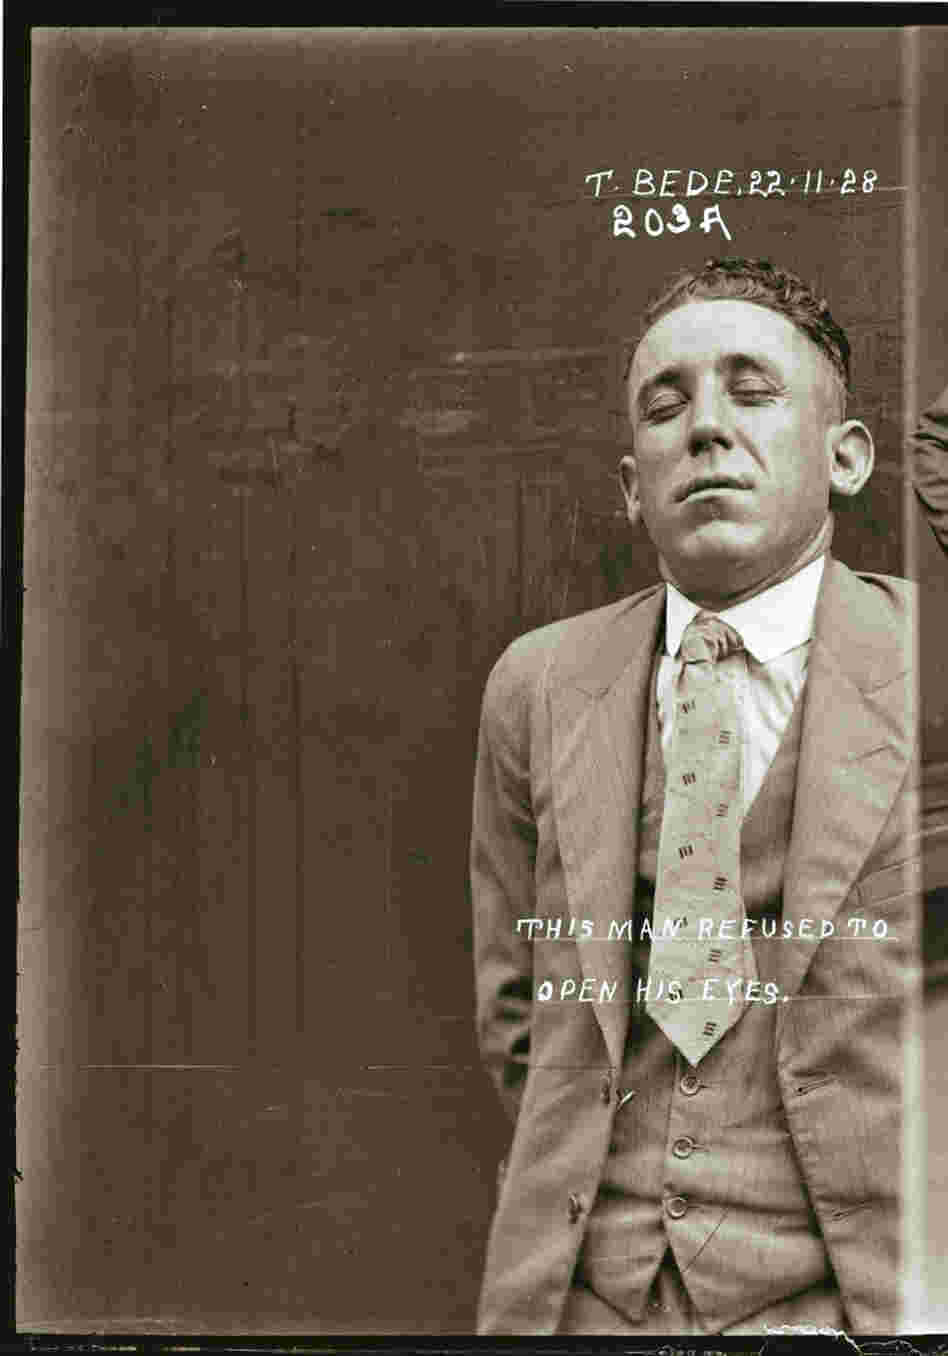 "Mug shot of Thomas Bede, Nov. 22, 1928, Central Police Station, Sydney. (On the image is says, ""This man refused to open his eyes."")"